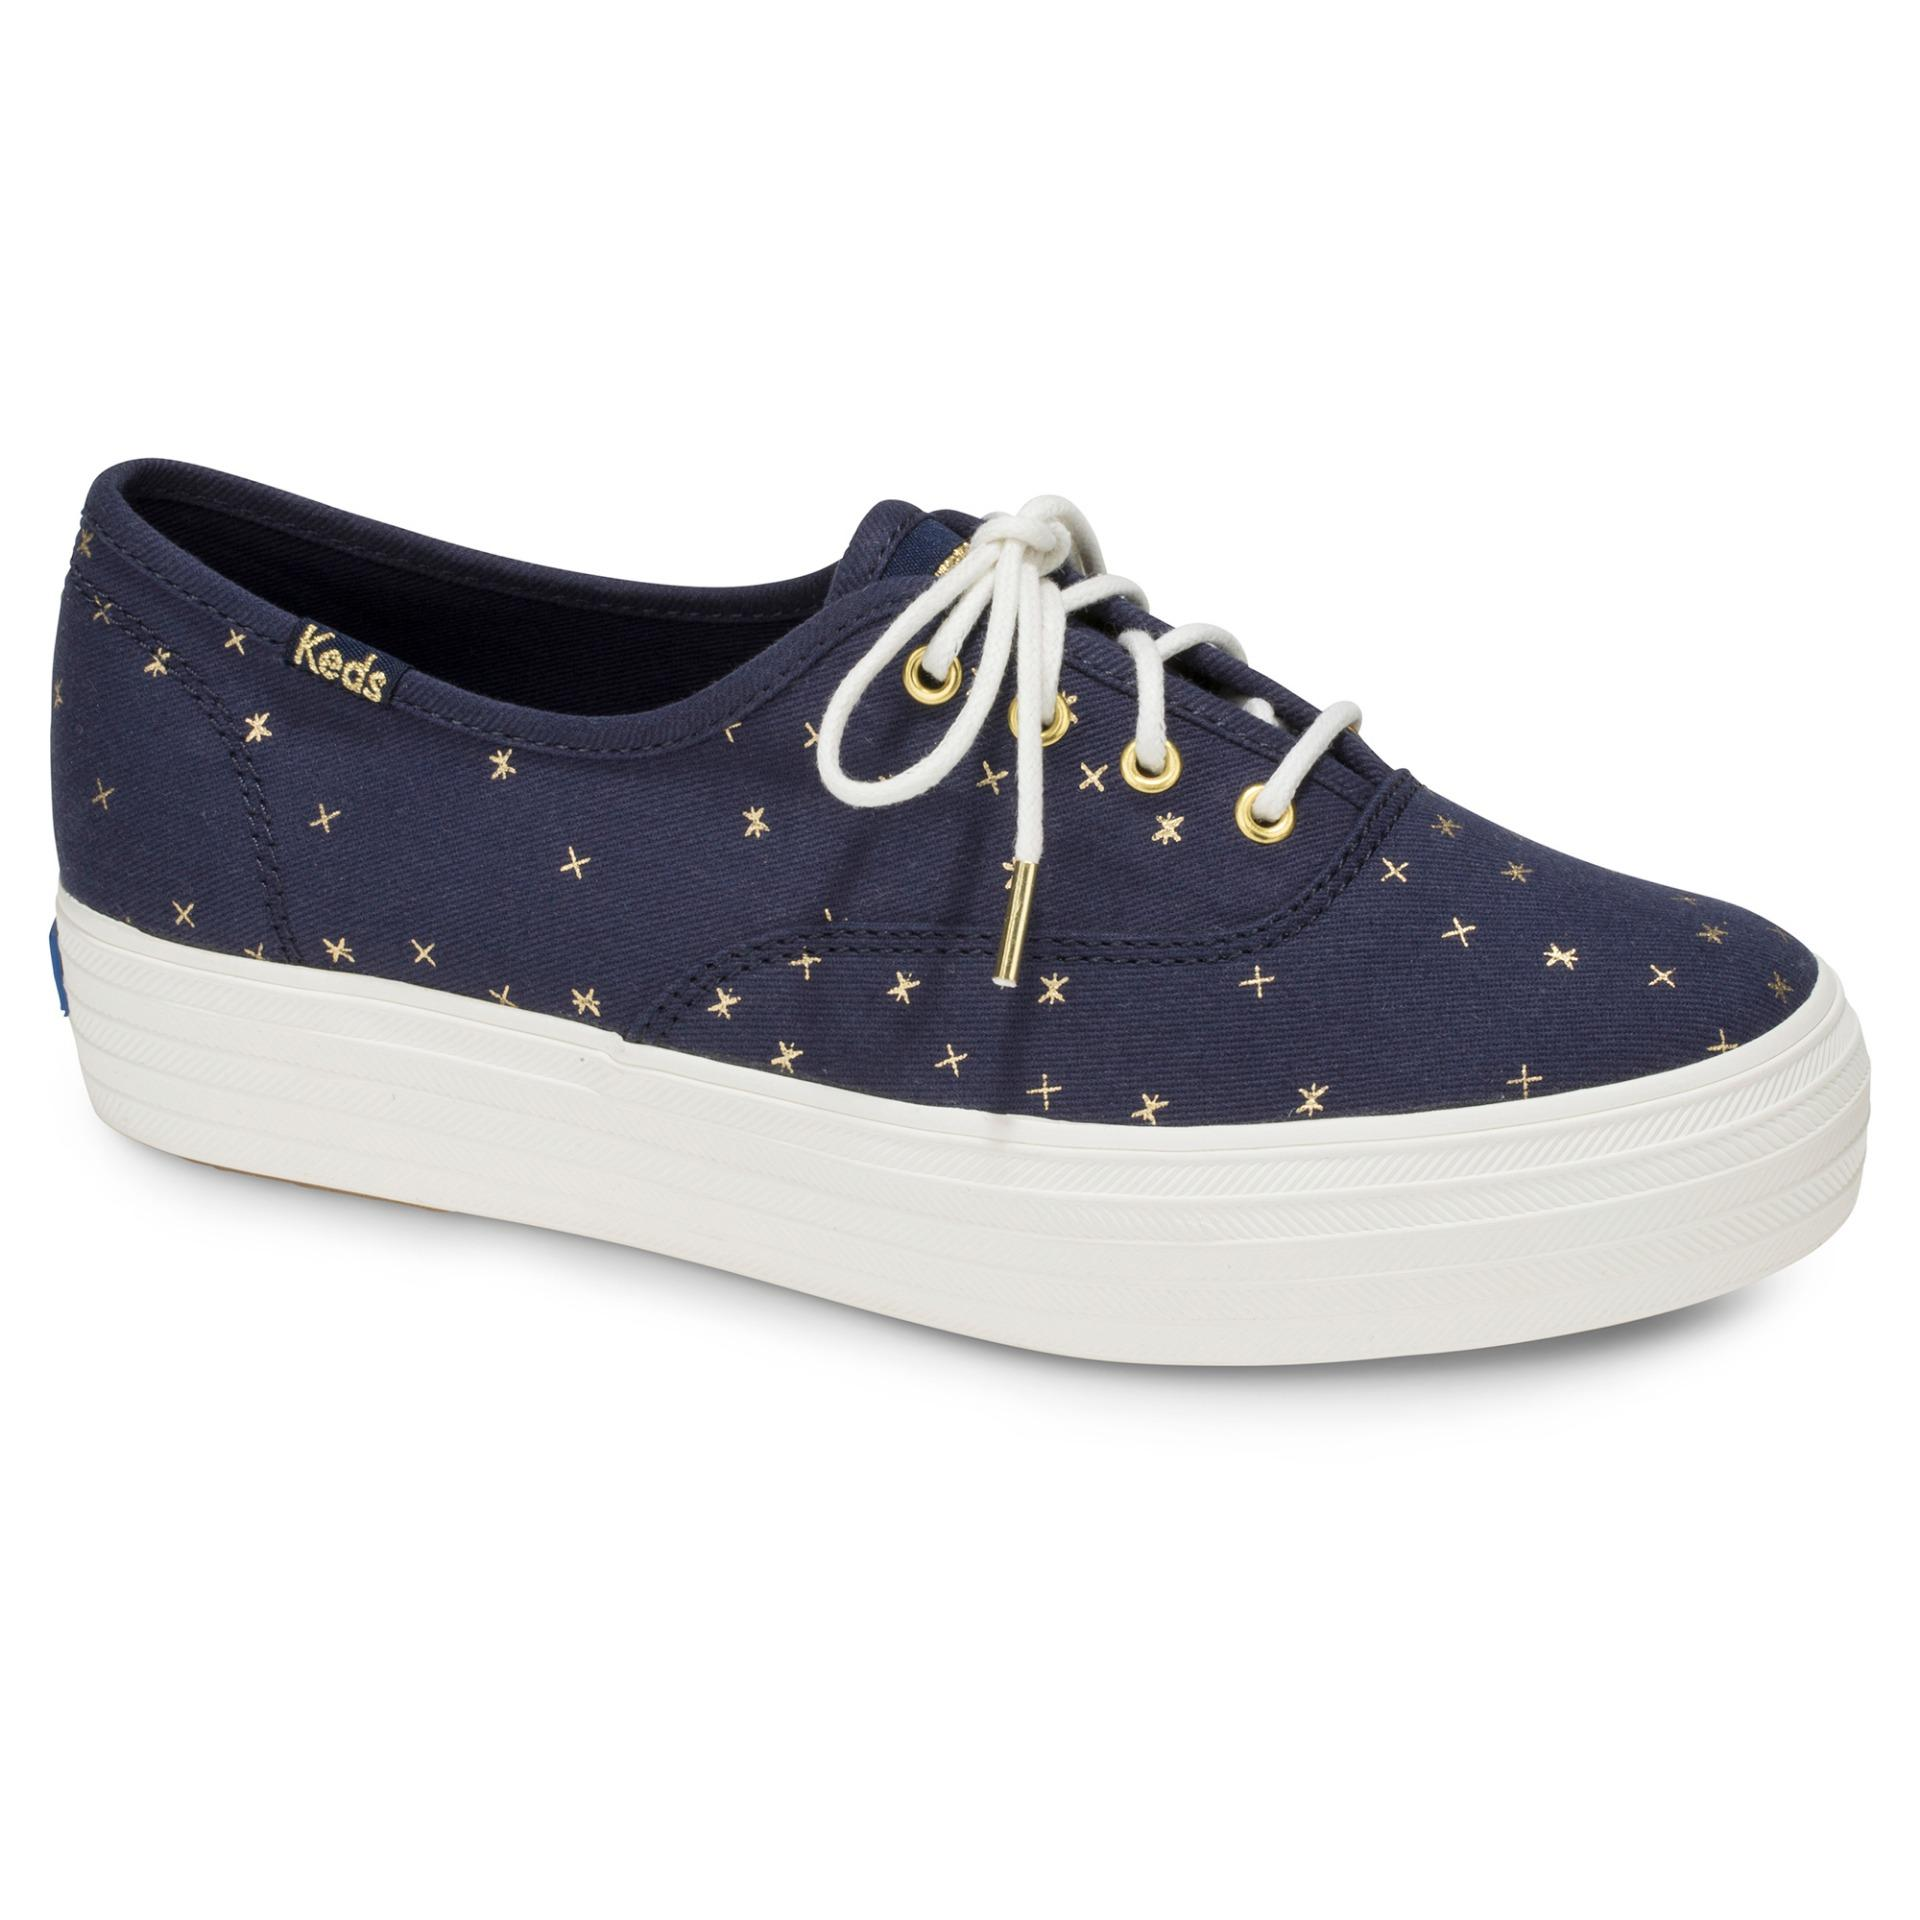 Buying Keds Triple Ethereal Sneakers Wf58031